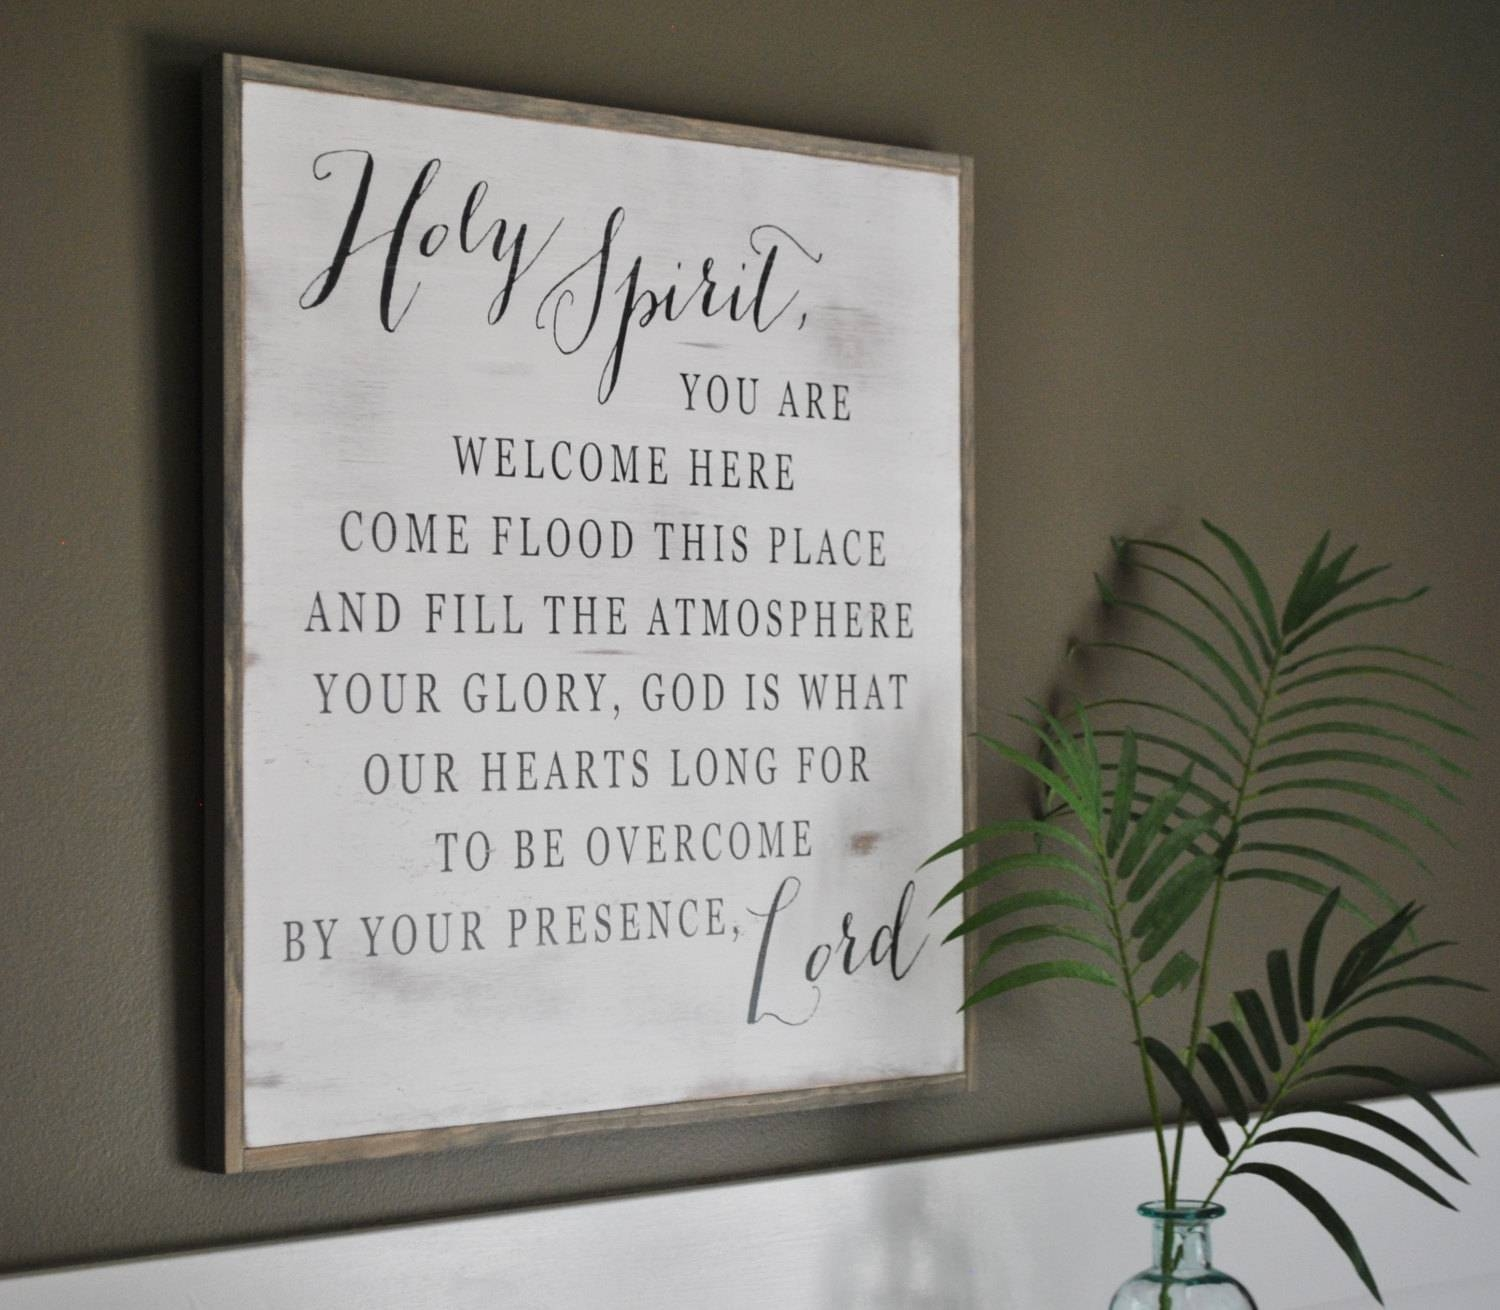 Holy Spirit 2'x2' || Inspirational Wall Art || Distressed Shabby For Best And Newest Inspirational Wall Plaques (View 18 of 20)